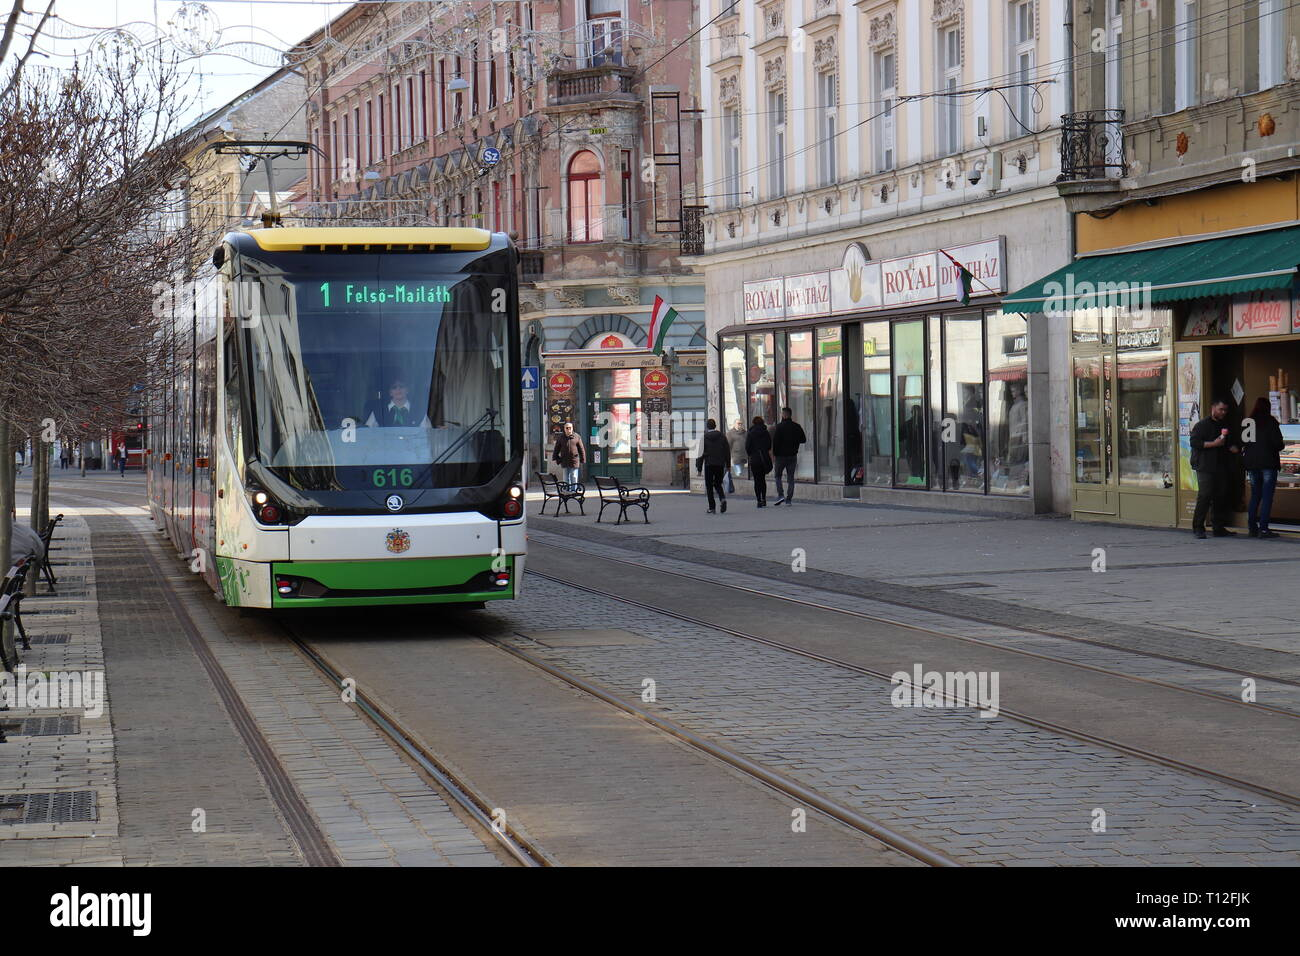 Street moments in Miskolc, Hungary with tram and old buildings. Pedestrian zone with public transport. Stock Photo